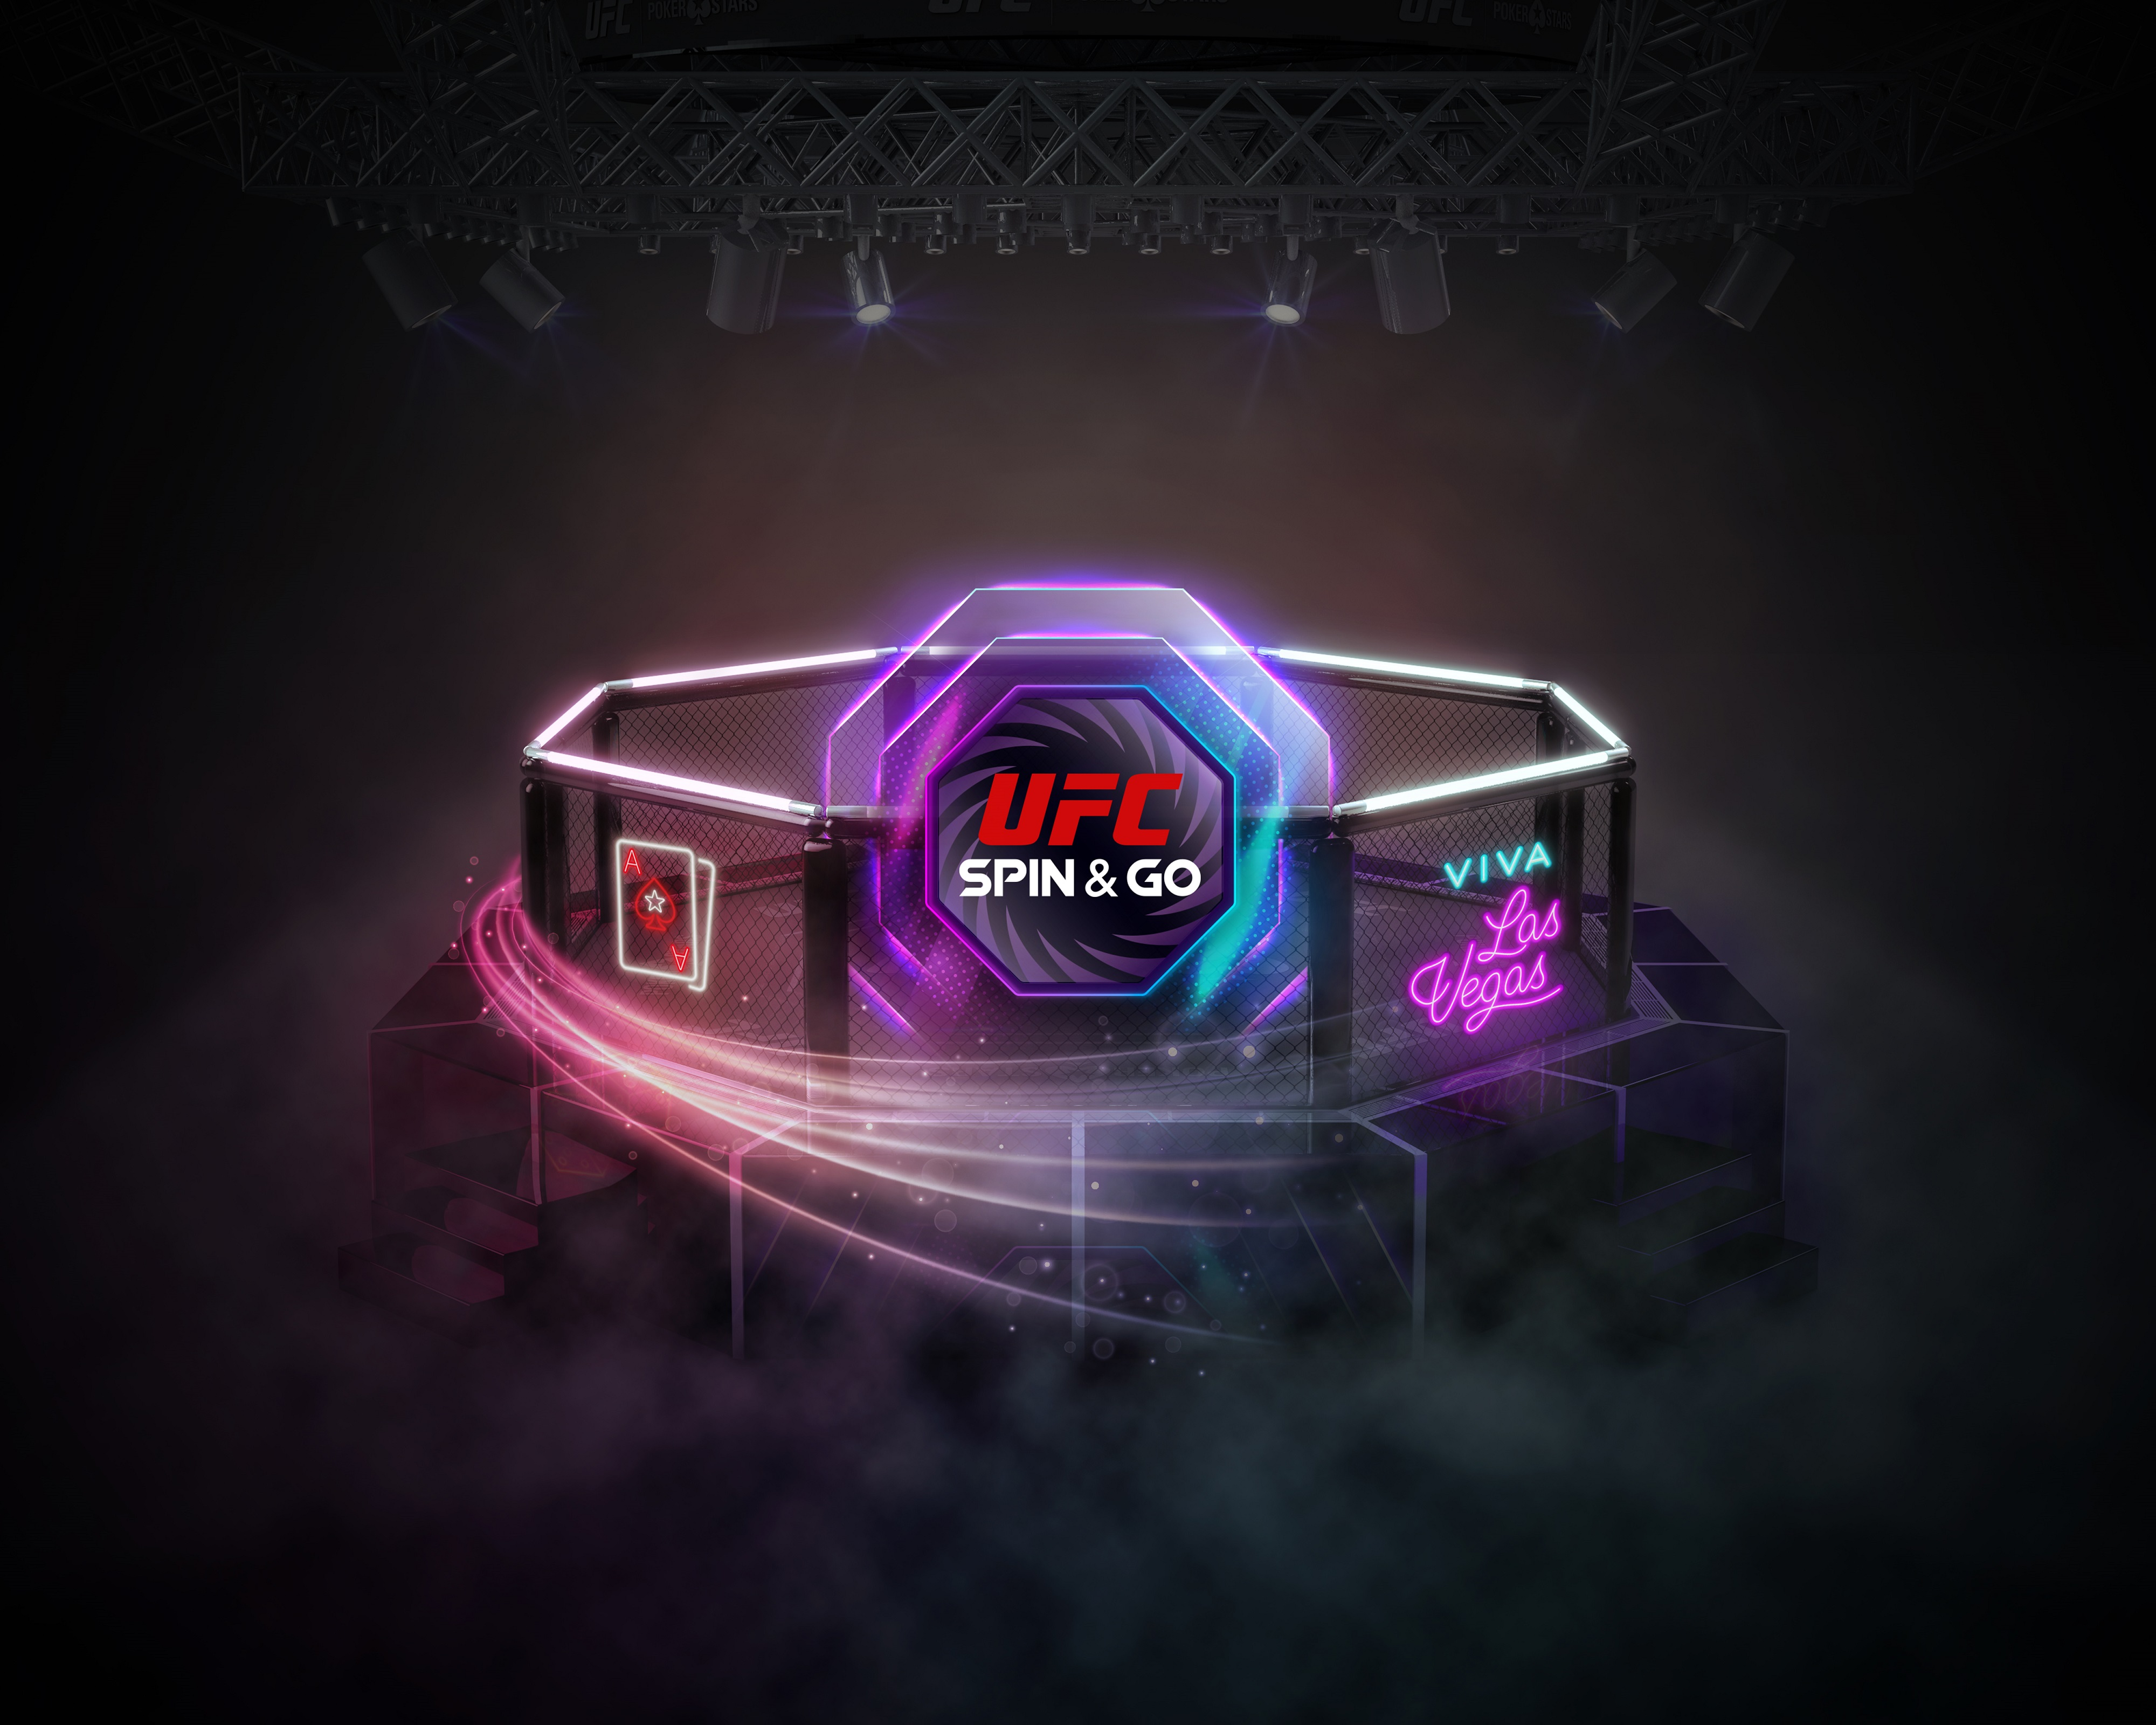 PokerStars and UFC Spin & Go's